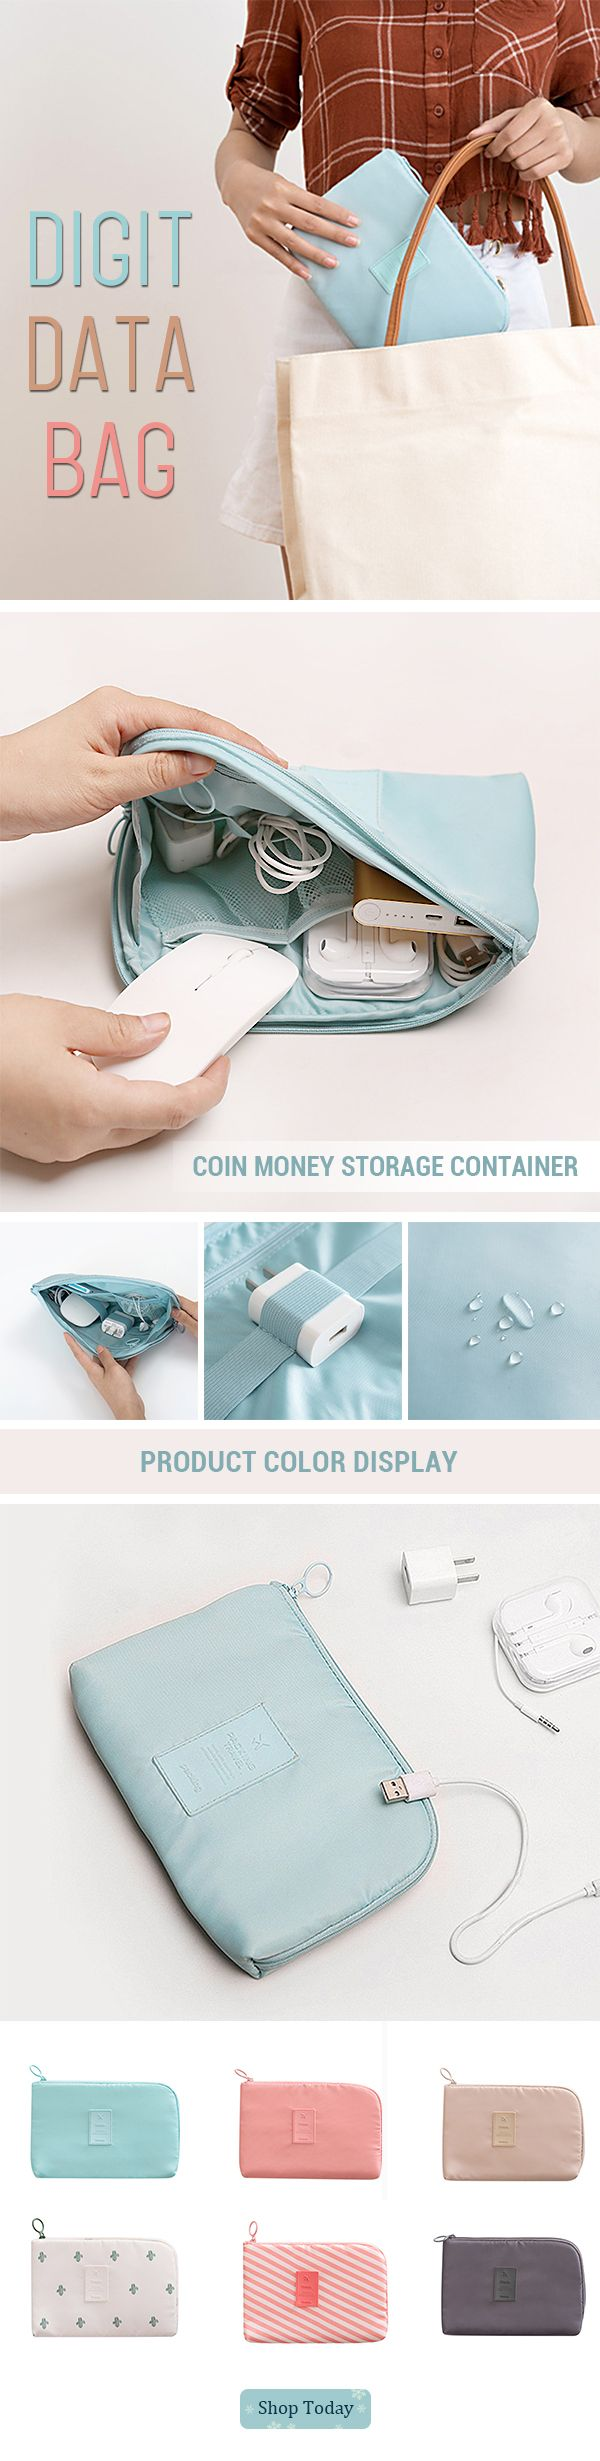 US$6.59 Digit Data Bag Headphone Protective Case Coin Money Storage Container#newchic#storage#gift